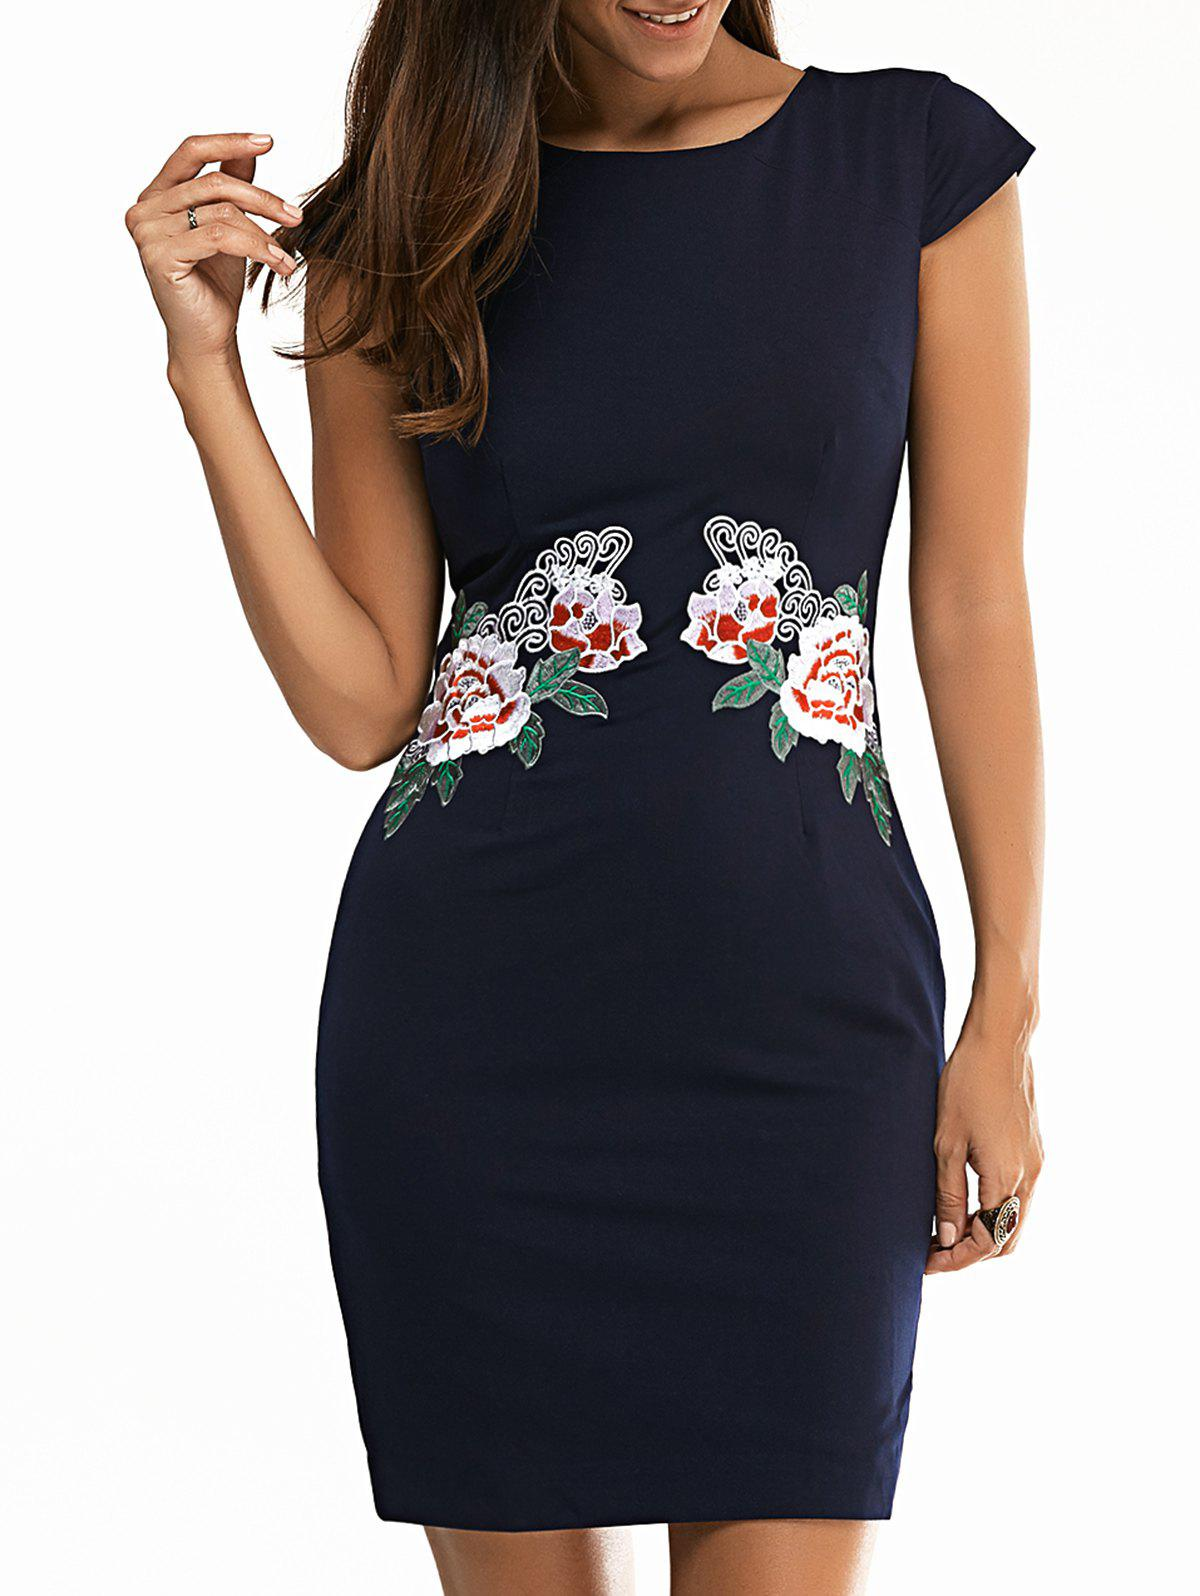 Trendy Jewel Neck Floral Embroidered Bodycon Dress